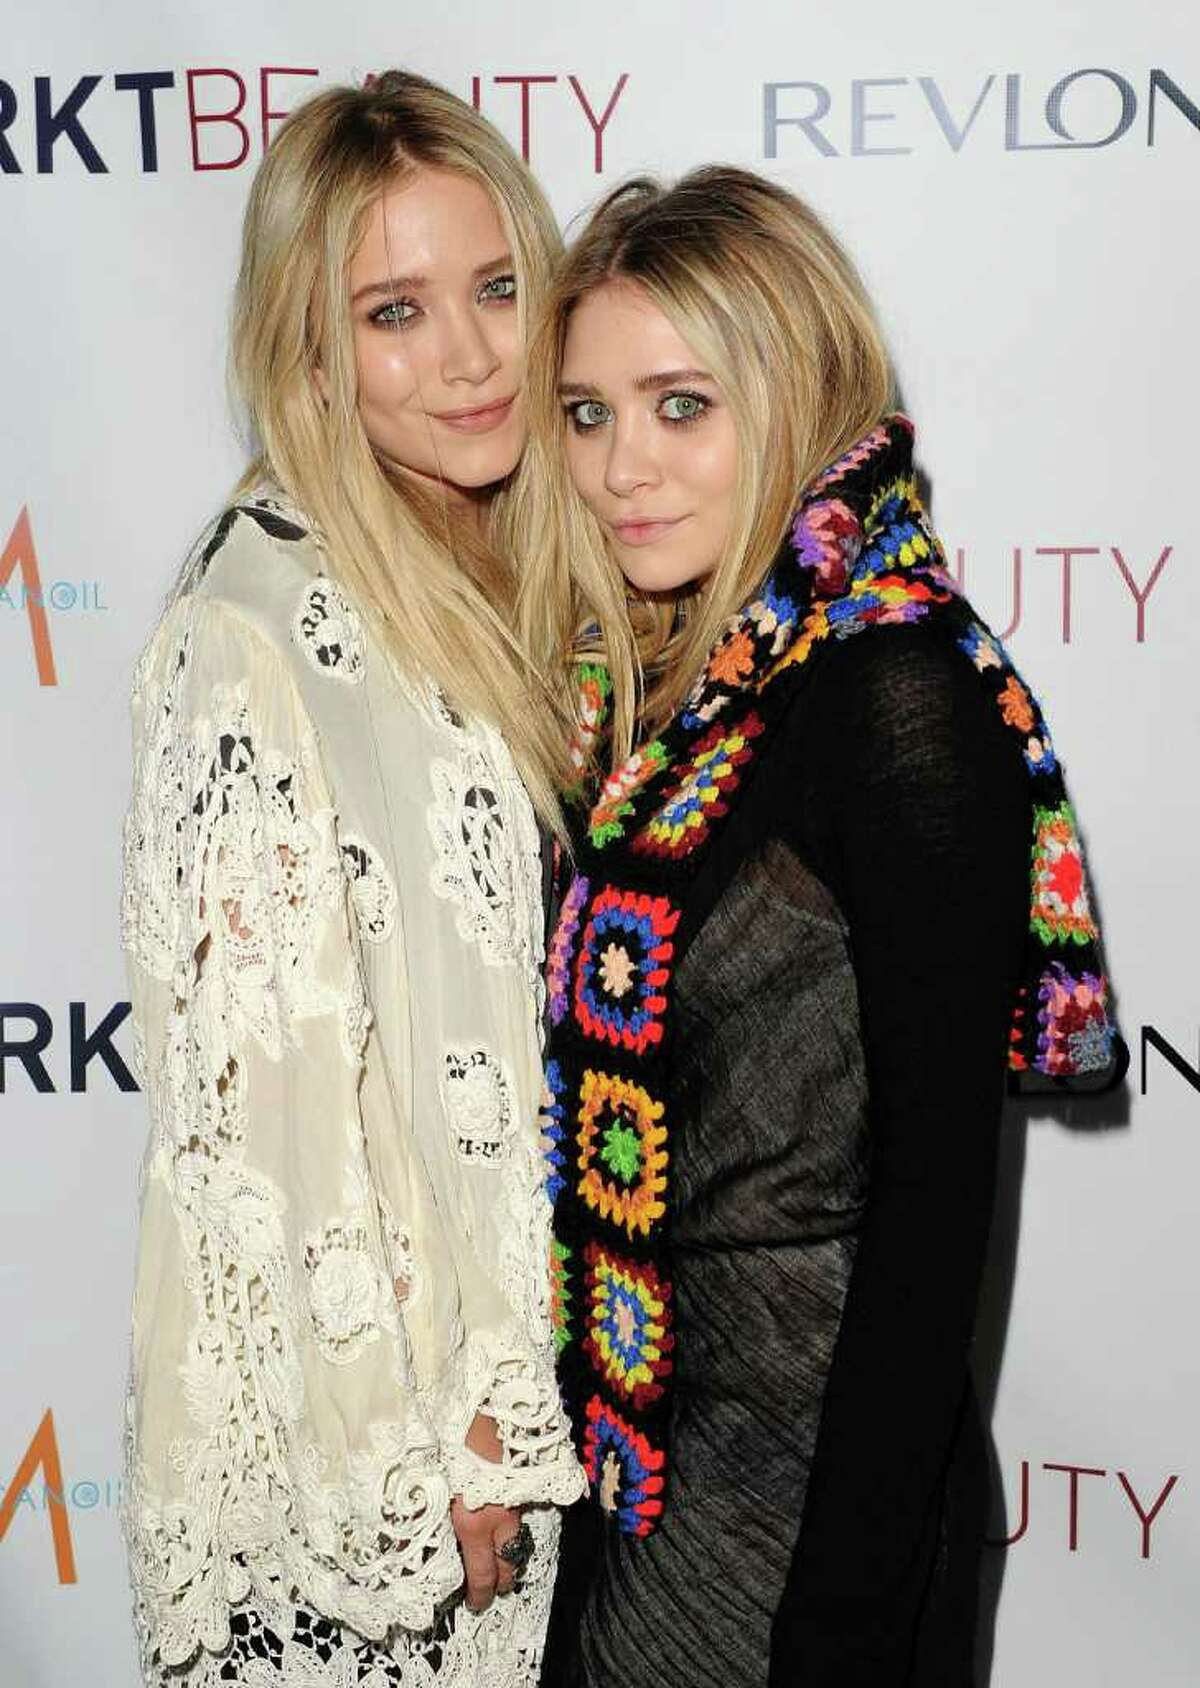 Twins Mary-Kate and Ashley, who turned 25 on Monday, June 13, 2011, have been in the public eye since infancy, when they took turns playing Michelle Tanner on the TV show